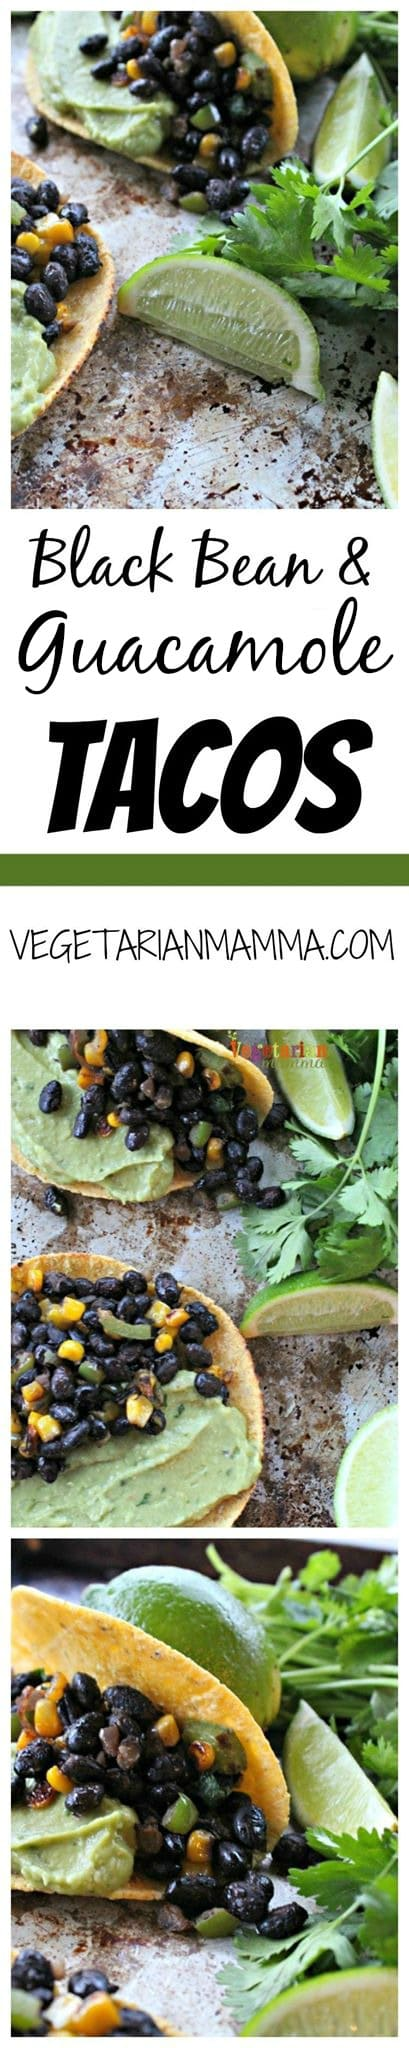 black bean and guacamole tacos tall pin @vegetarianmamma